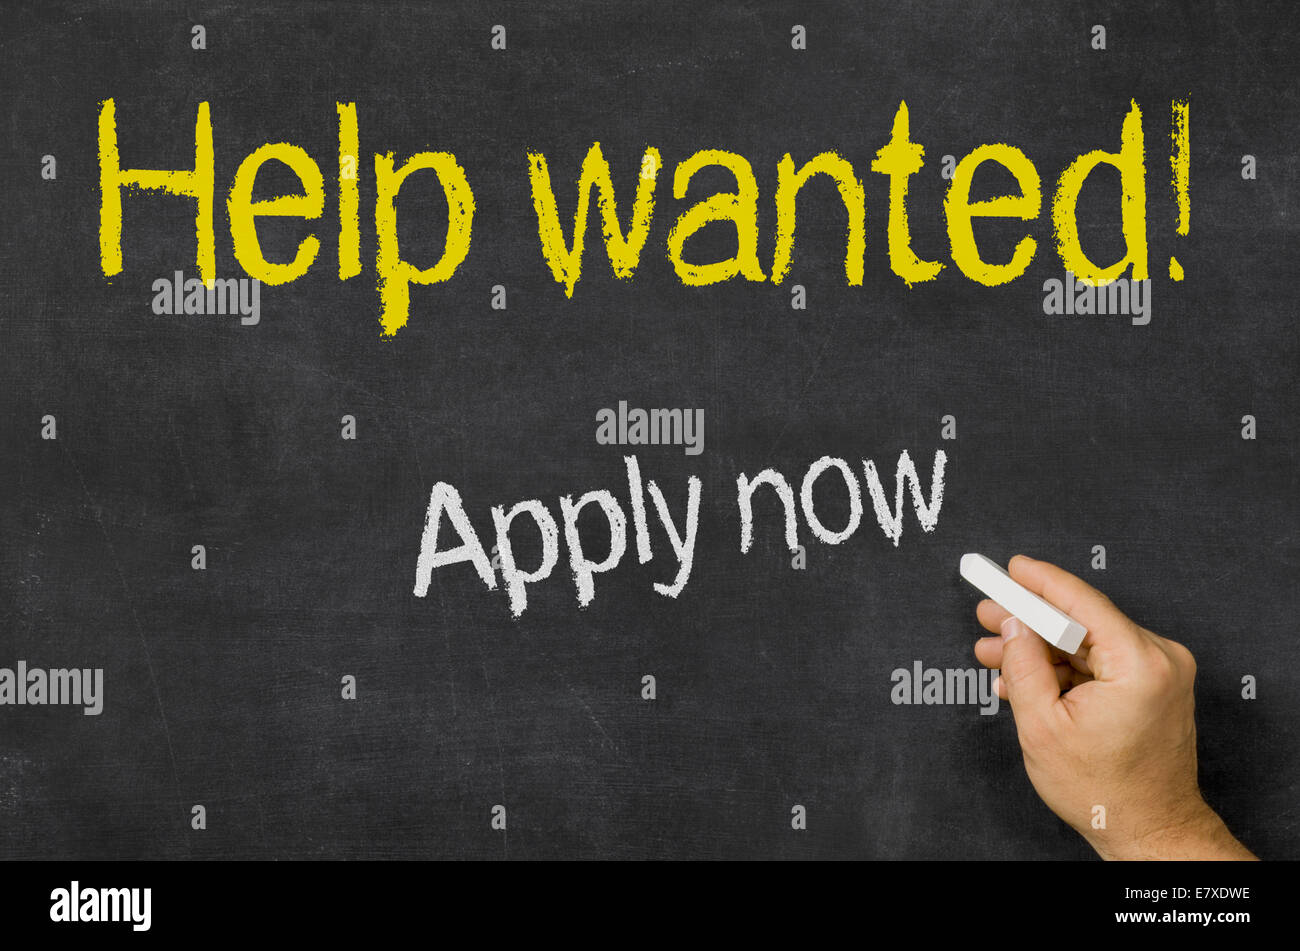 Help wanted - Stock Image